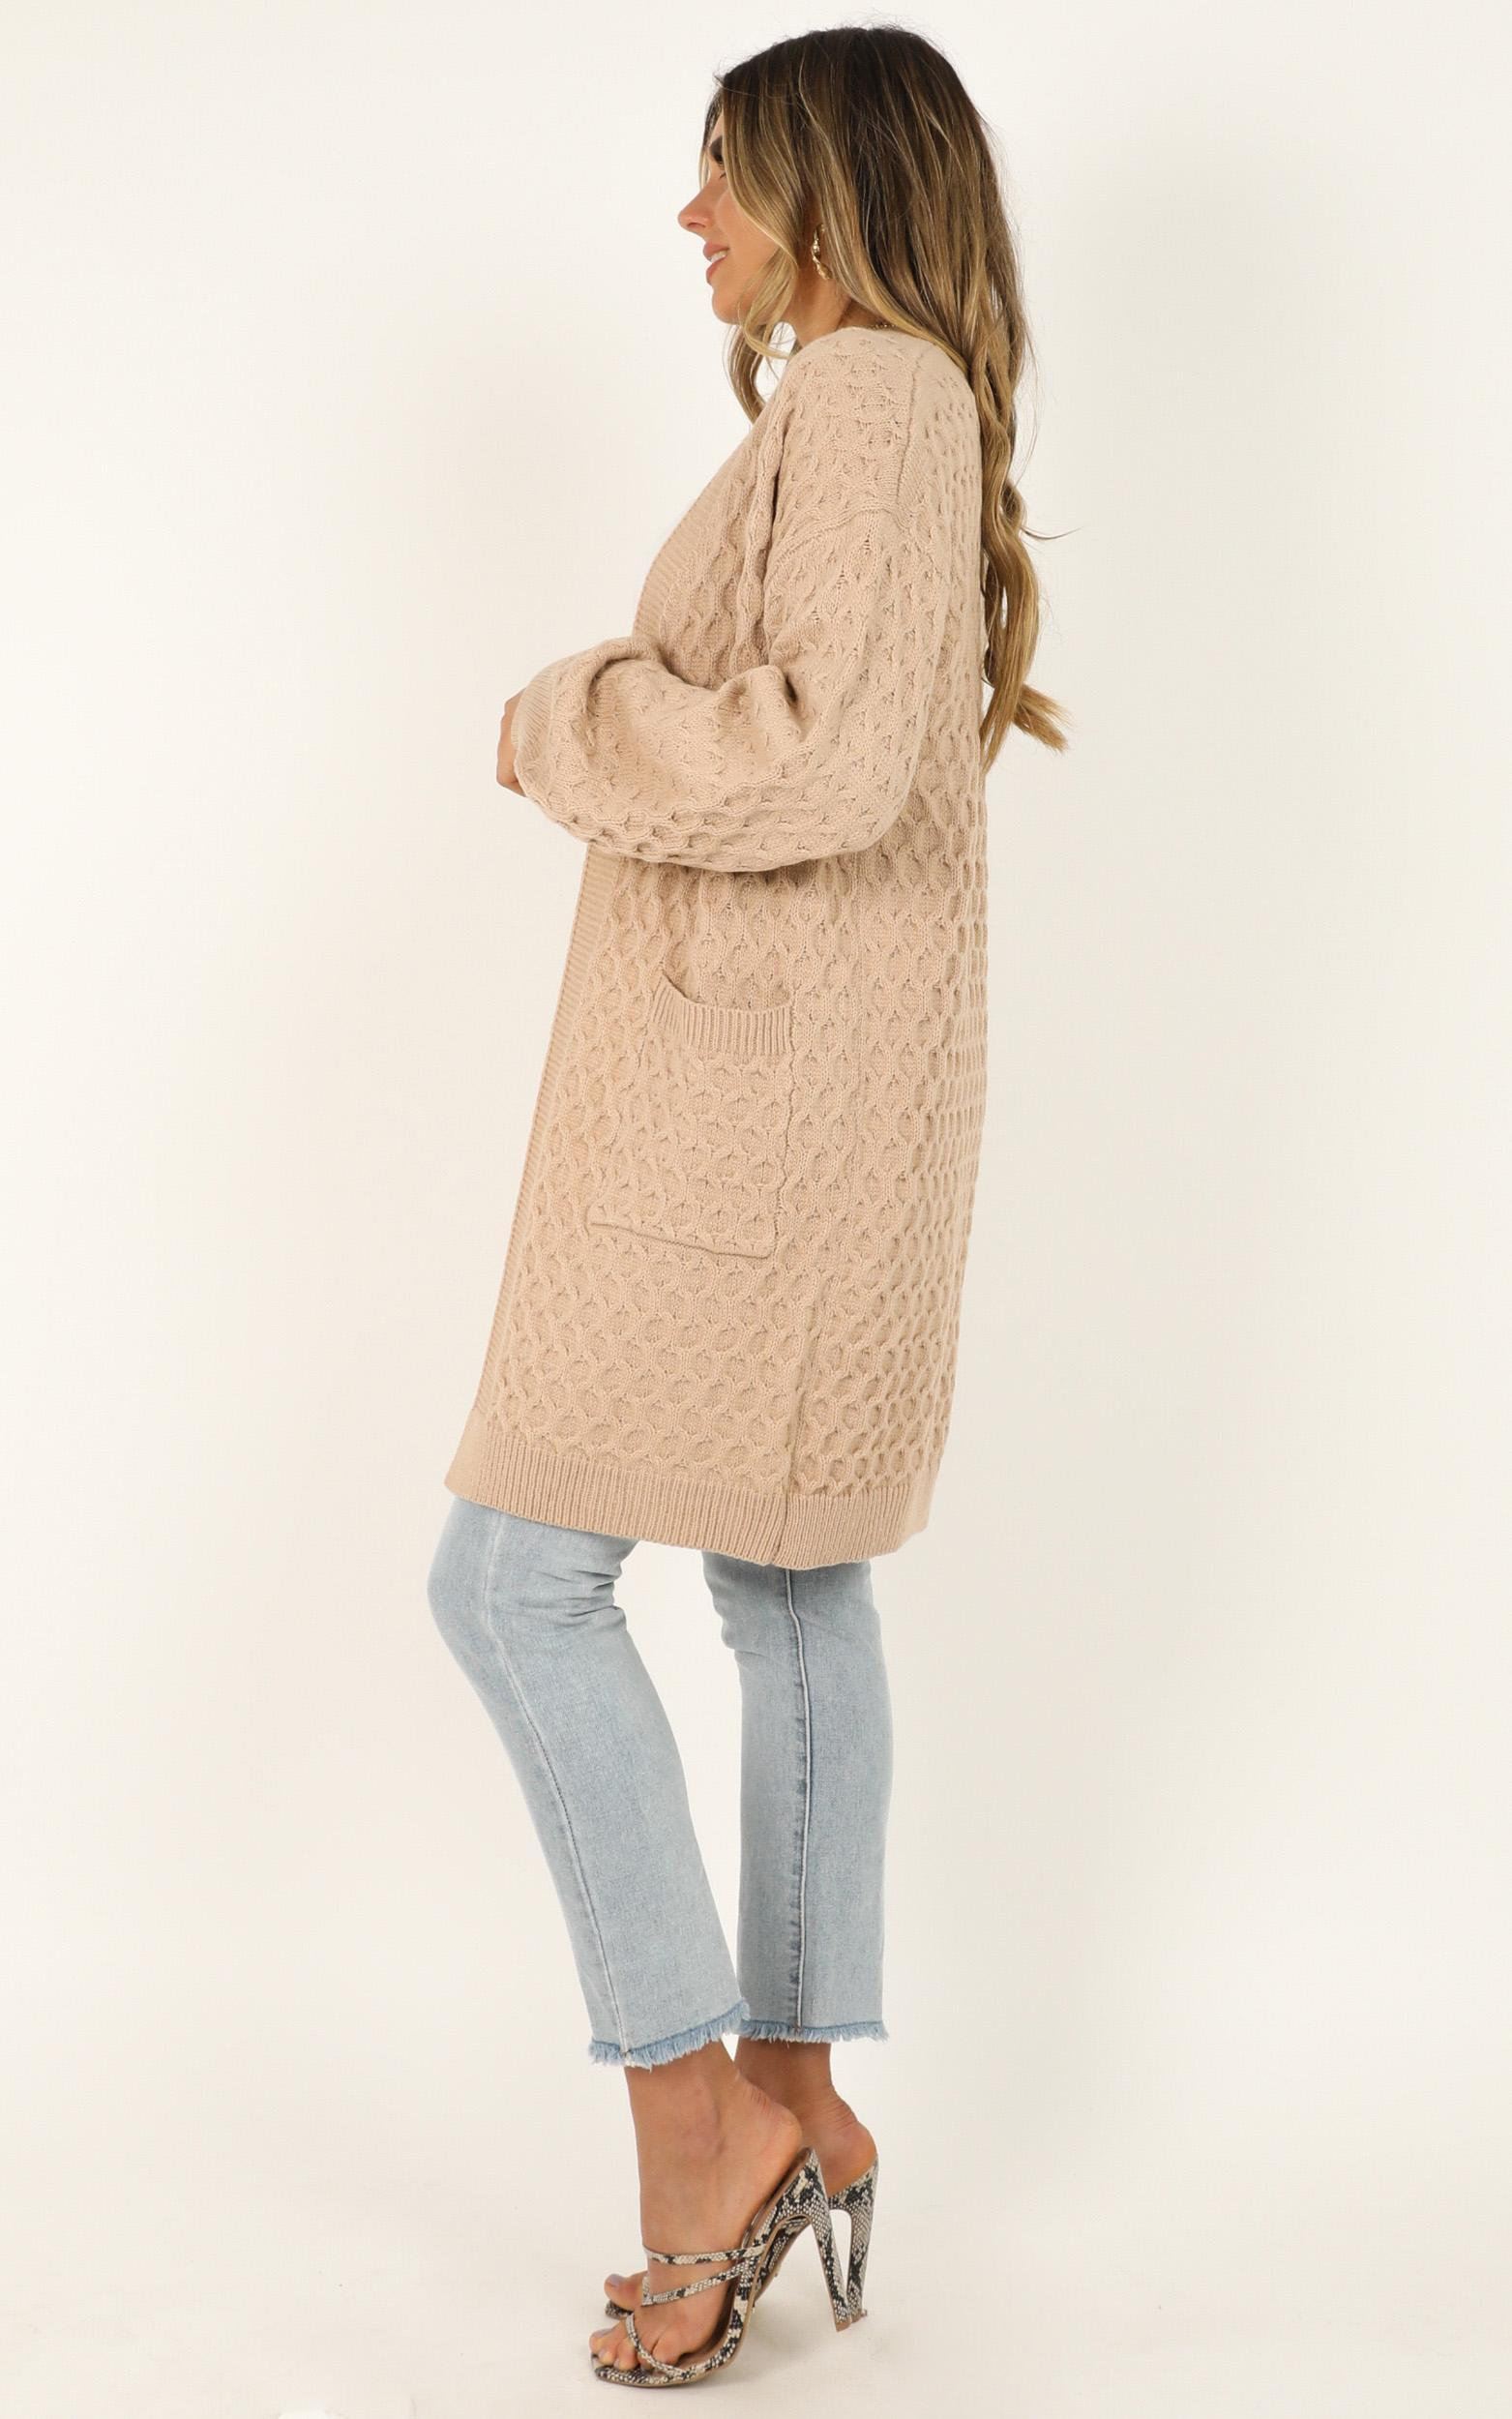 Call On You Cardigan in beige - 18 (XXXL), Beige, hi-res image number null